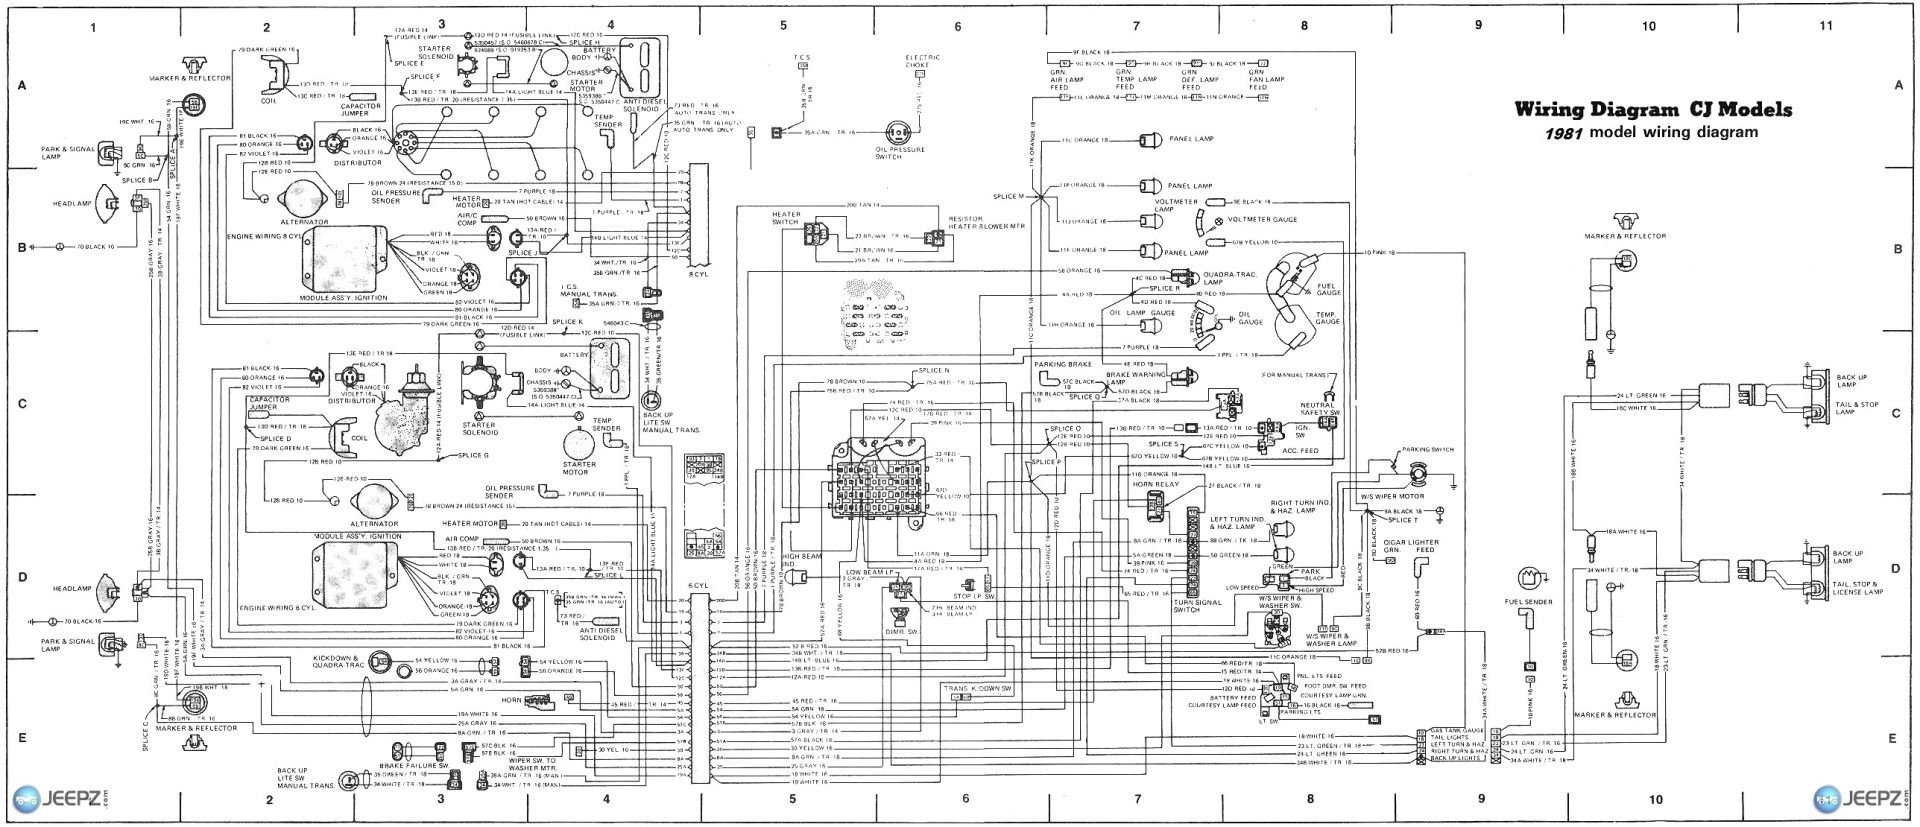 Clark Gcx 25e Wiring Diagram Detailed Diagrams Bush Hog Schematics Electric Forklift List Of Schematic Circuit Image